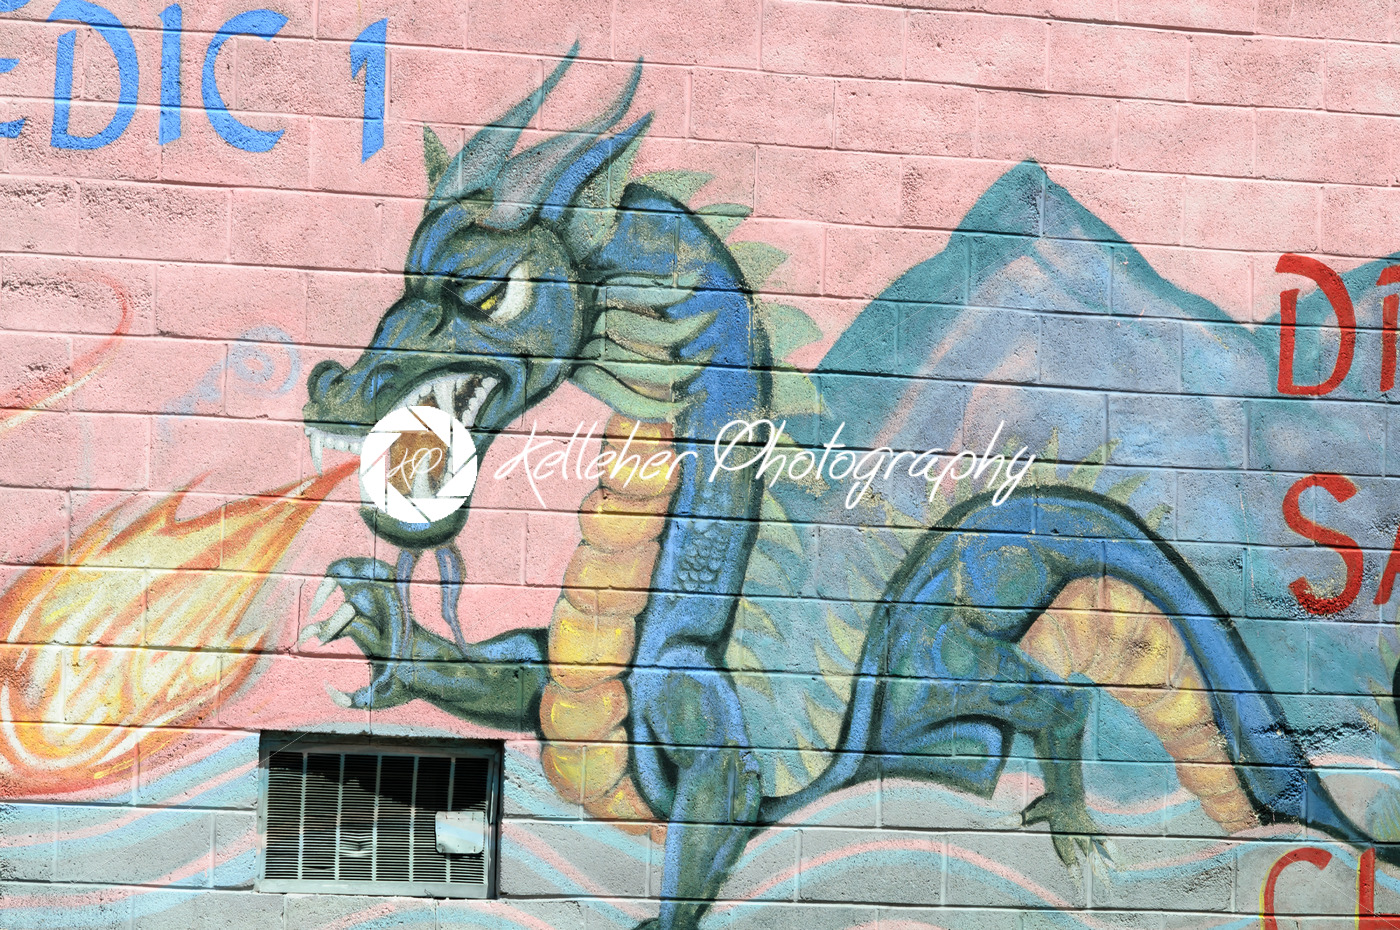 PHILADELPHIA, PA – MAY 14: Fire breathing dragon graffti artwork mural in the Chinatown section of downtown Philadelphia on May 14, 2015 - Kelleher Photography Store